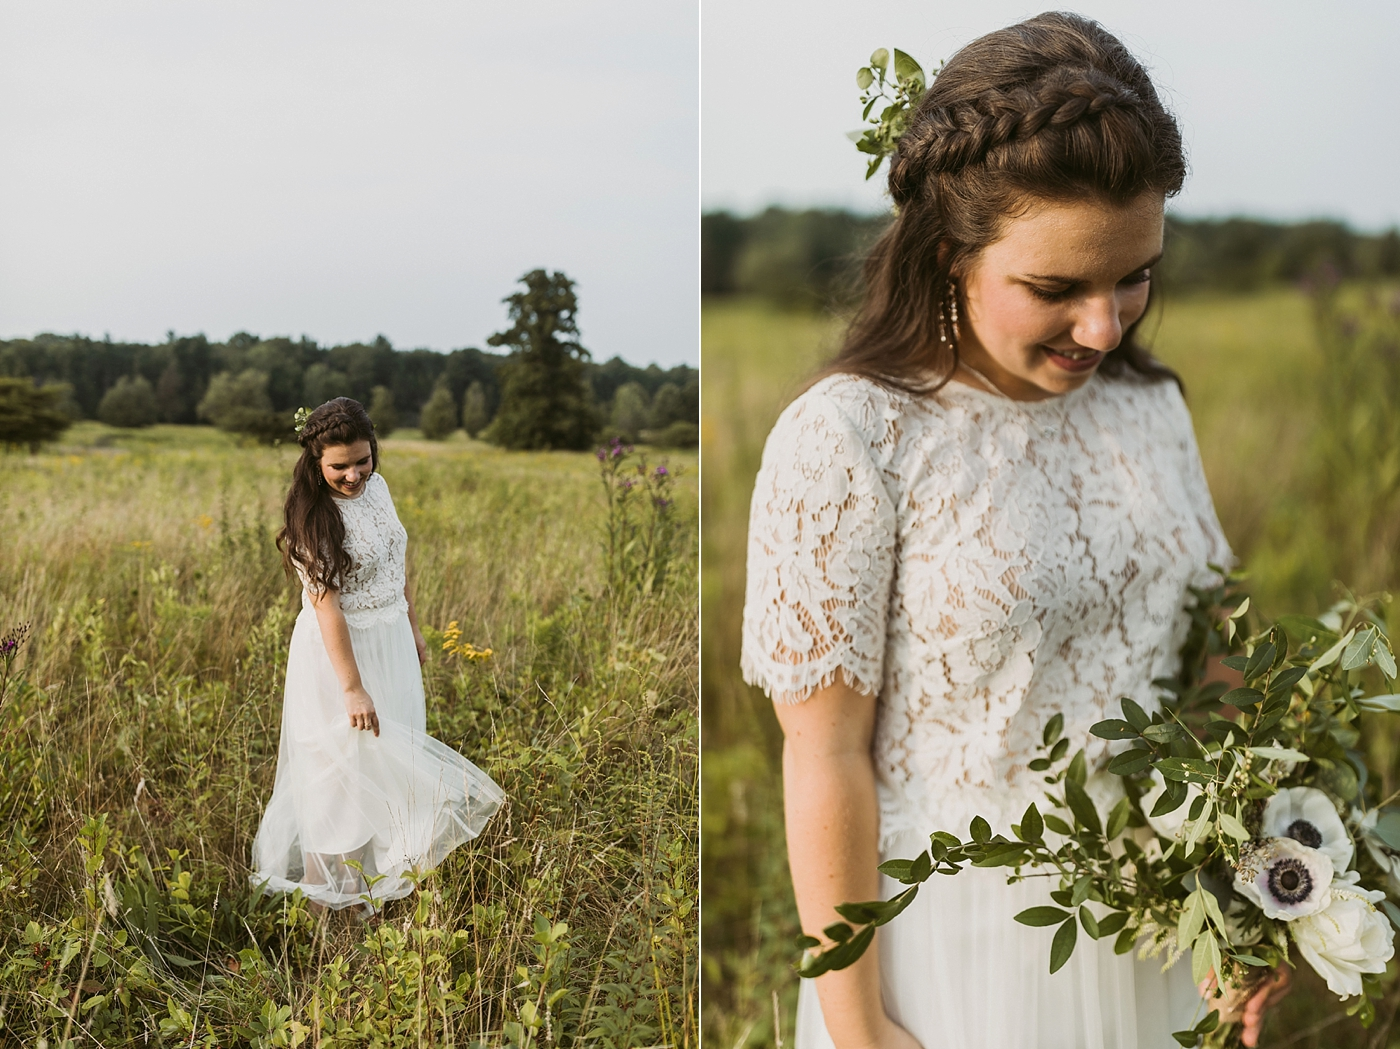 Meadow-Elopement-Ashley+Ben_MJPHOTO2018-173.jpg